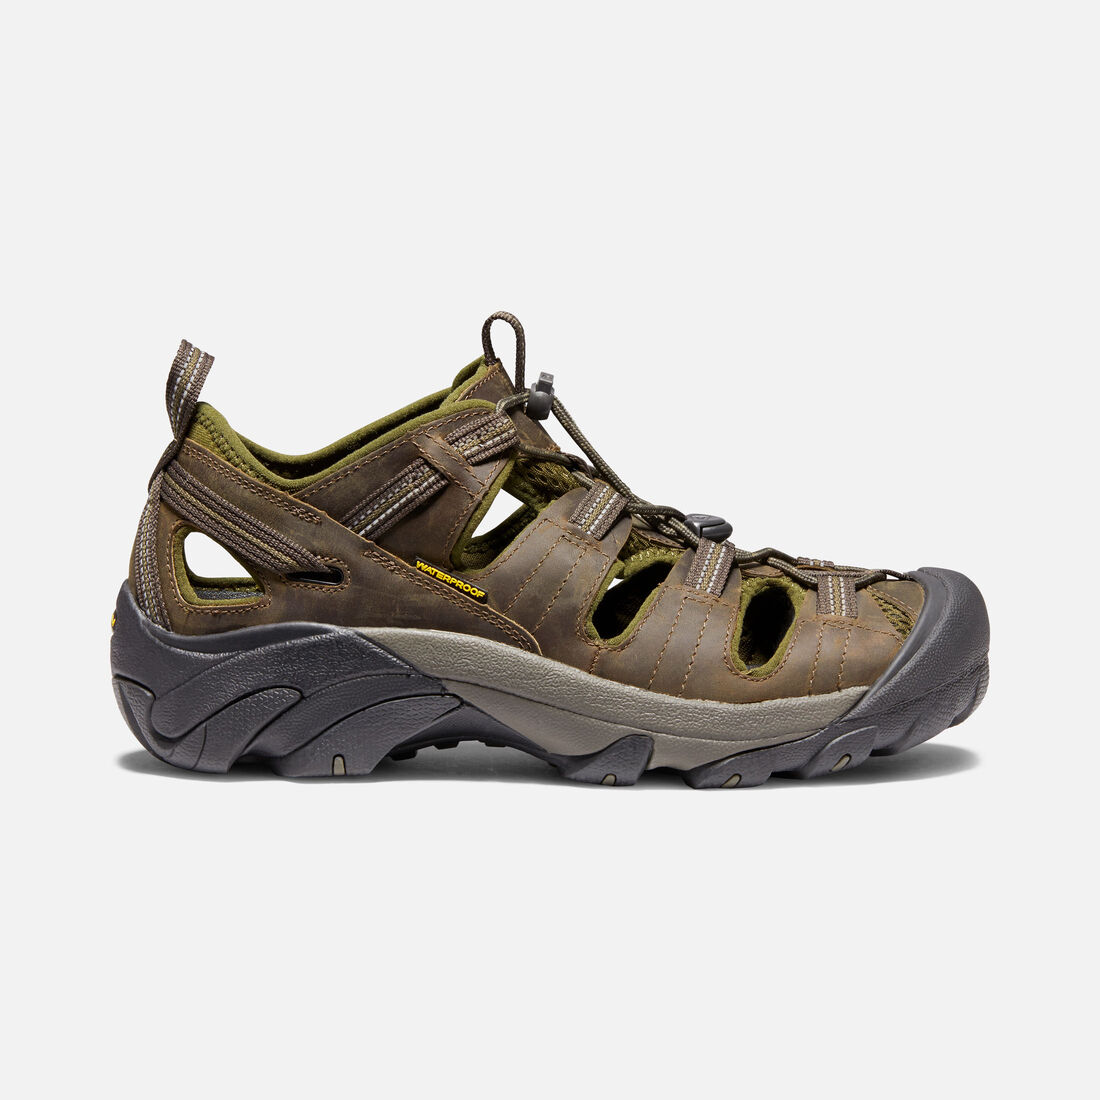 Men's Arroyo II in CANTEEN/DARK OLIVE - large view.